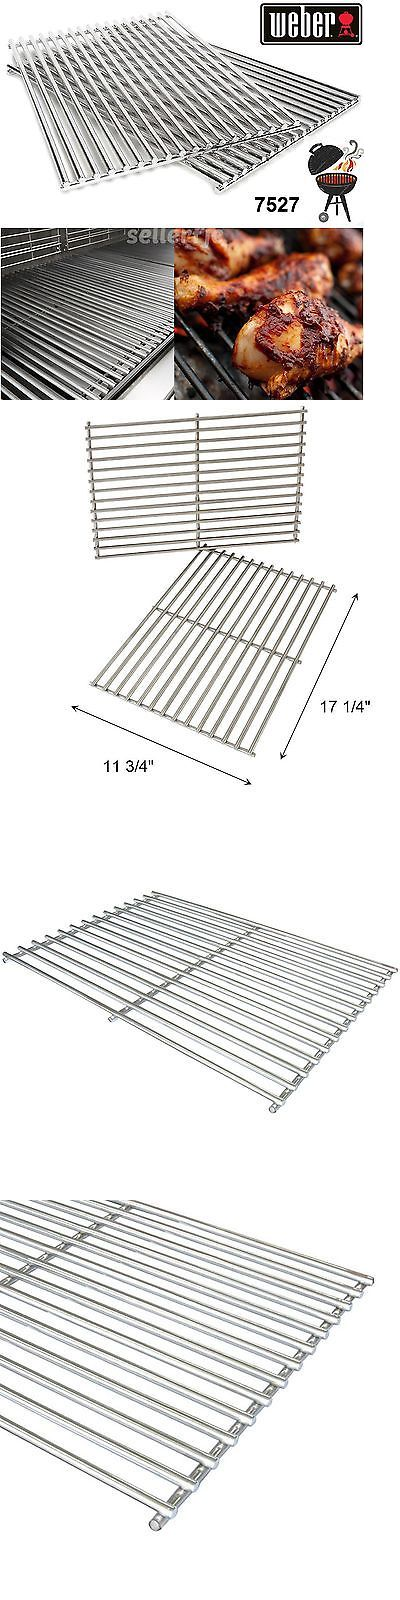 BBQ and Grill Replacement Parts 177018: For Weber 7527 Set Of 2 Solid Stainless Steel Cooking Grates Spirit Genesis 9930 -> BUY IT NOW ONLY: $66.8 on eBay!